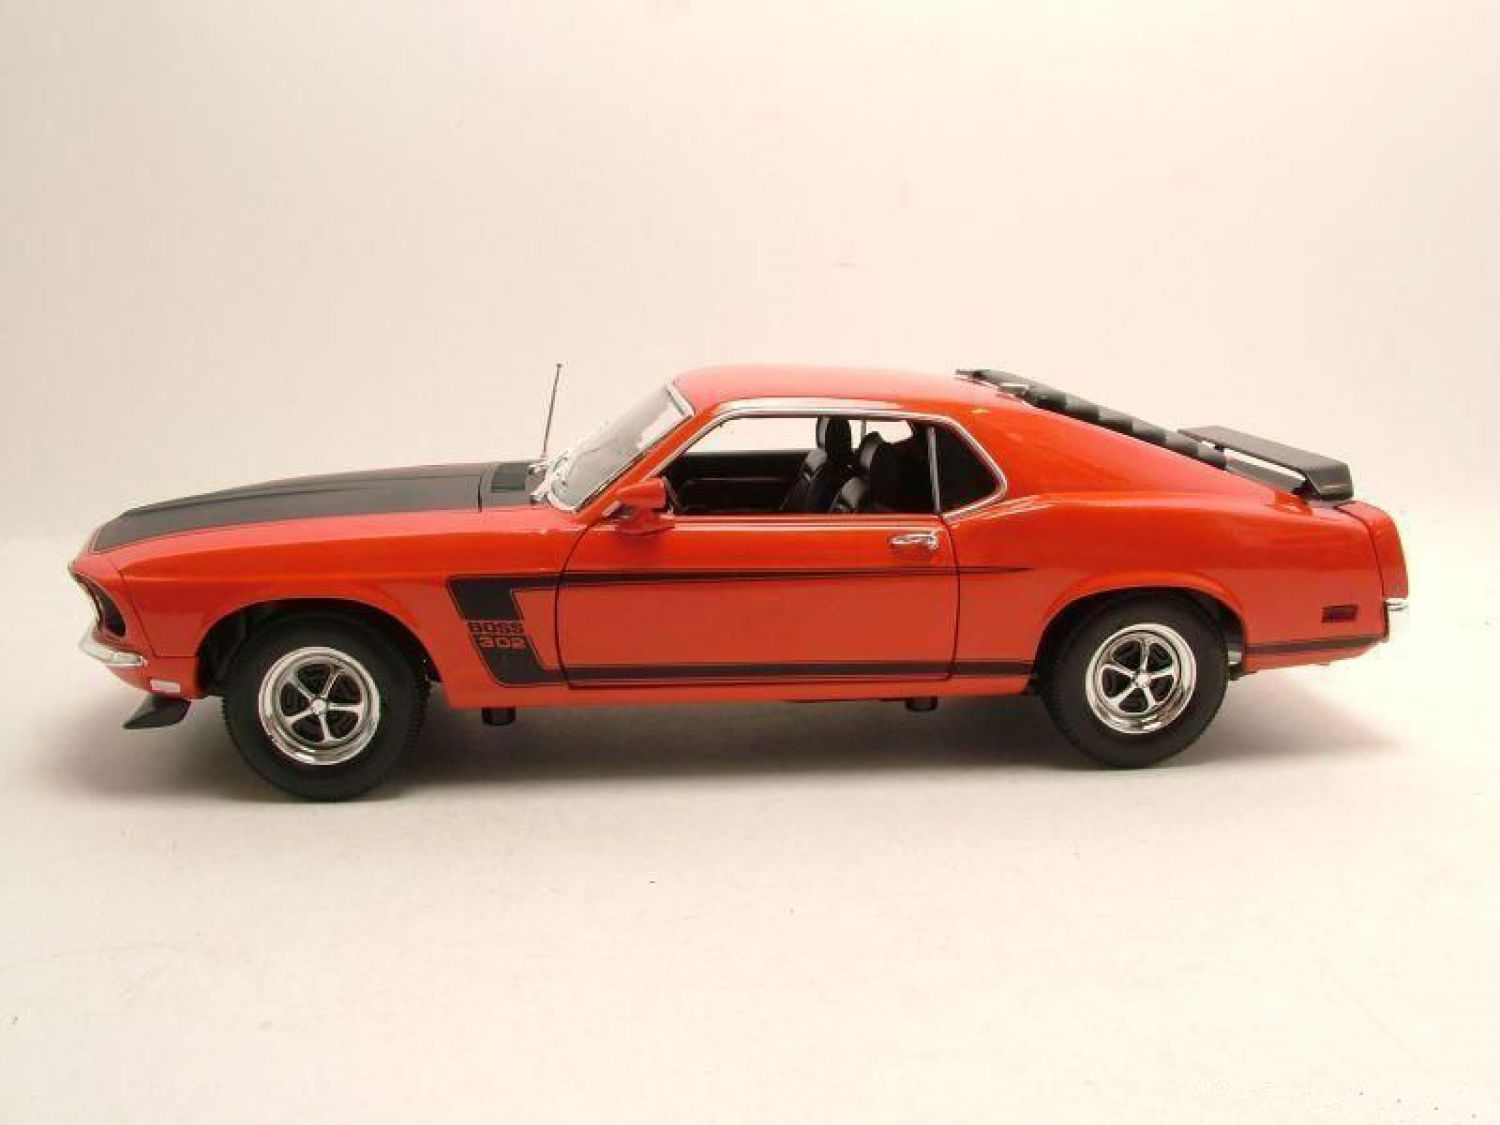 ford mustang boss 302 1969 rot modellauto 1 18 welly ebay. Black Bedroom Furniture Sets. Home Design Ideas